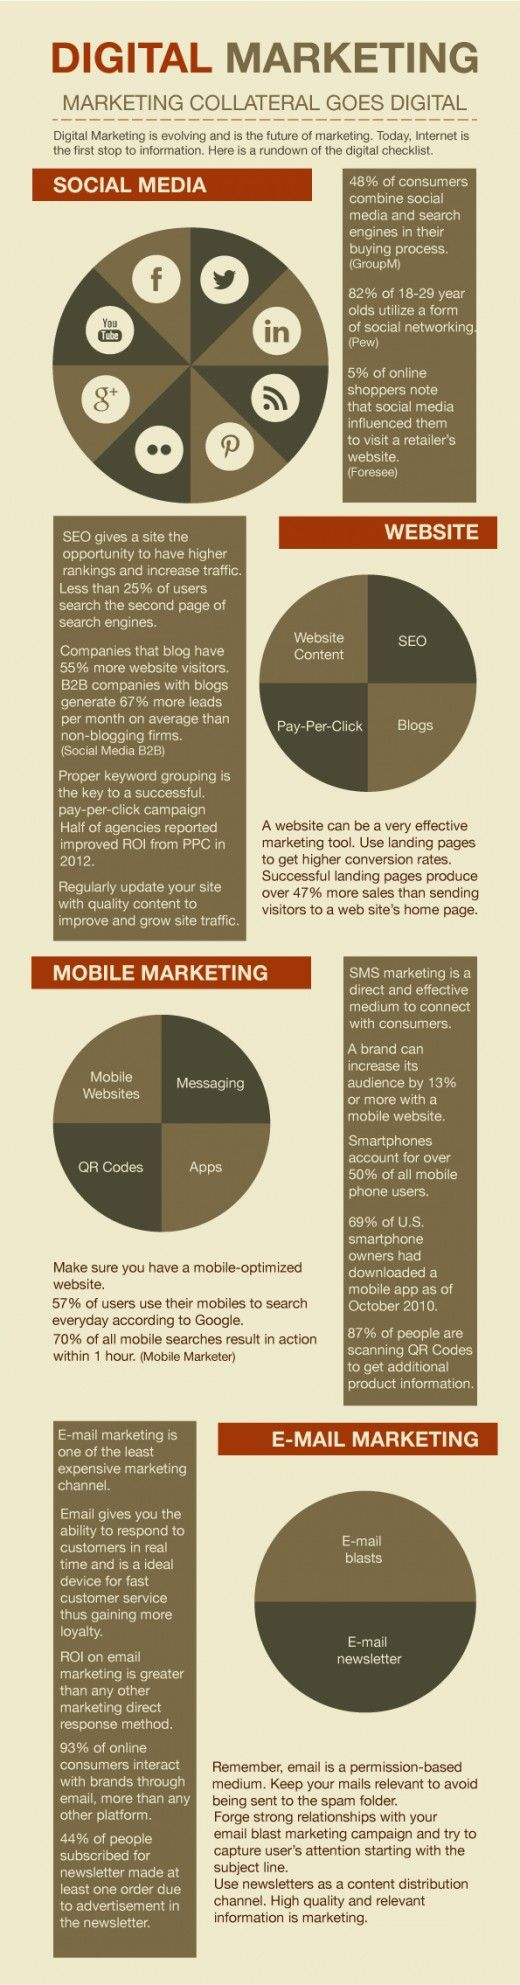 Infographic of digital marketing checklist with some facts and statistics to help you create an effective digital marketing campaign